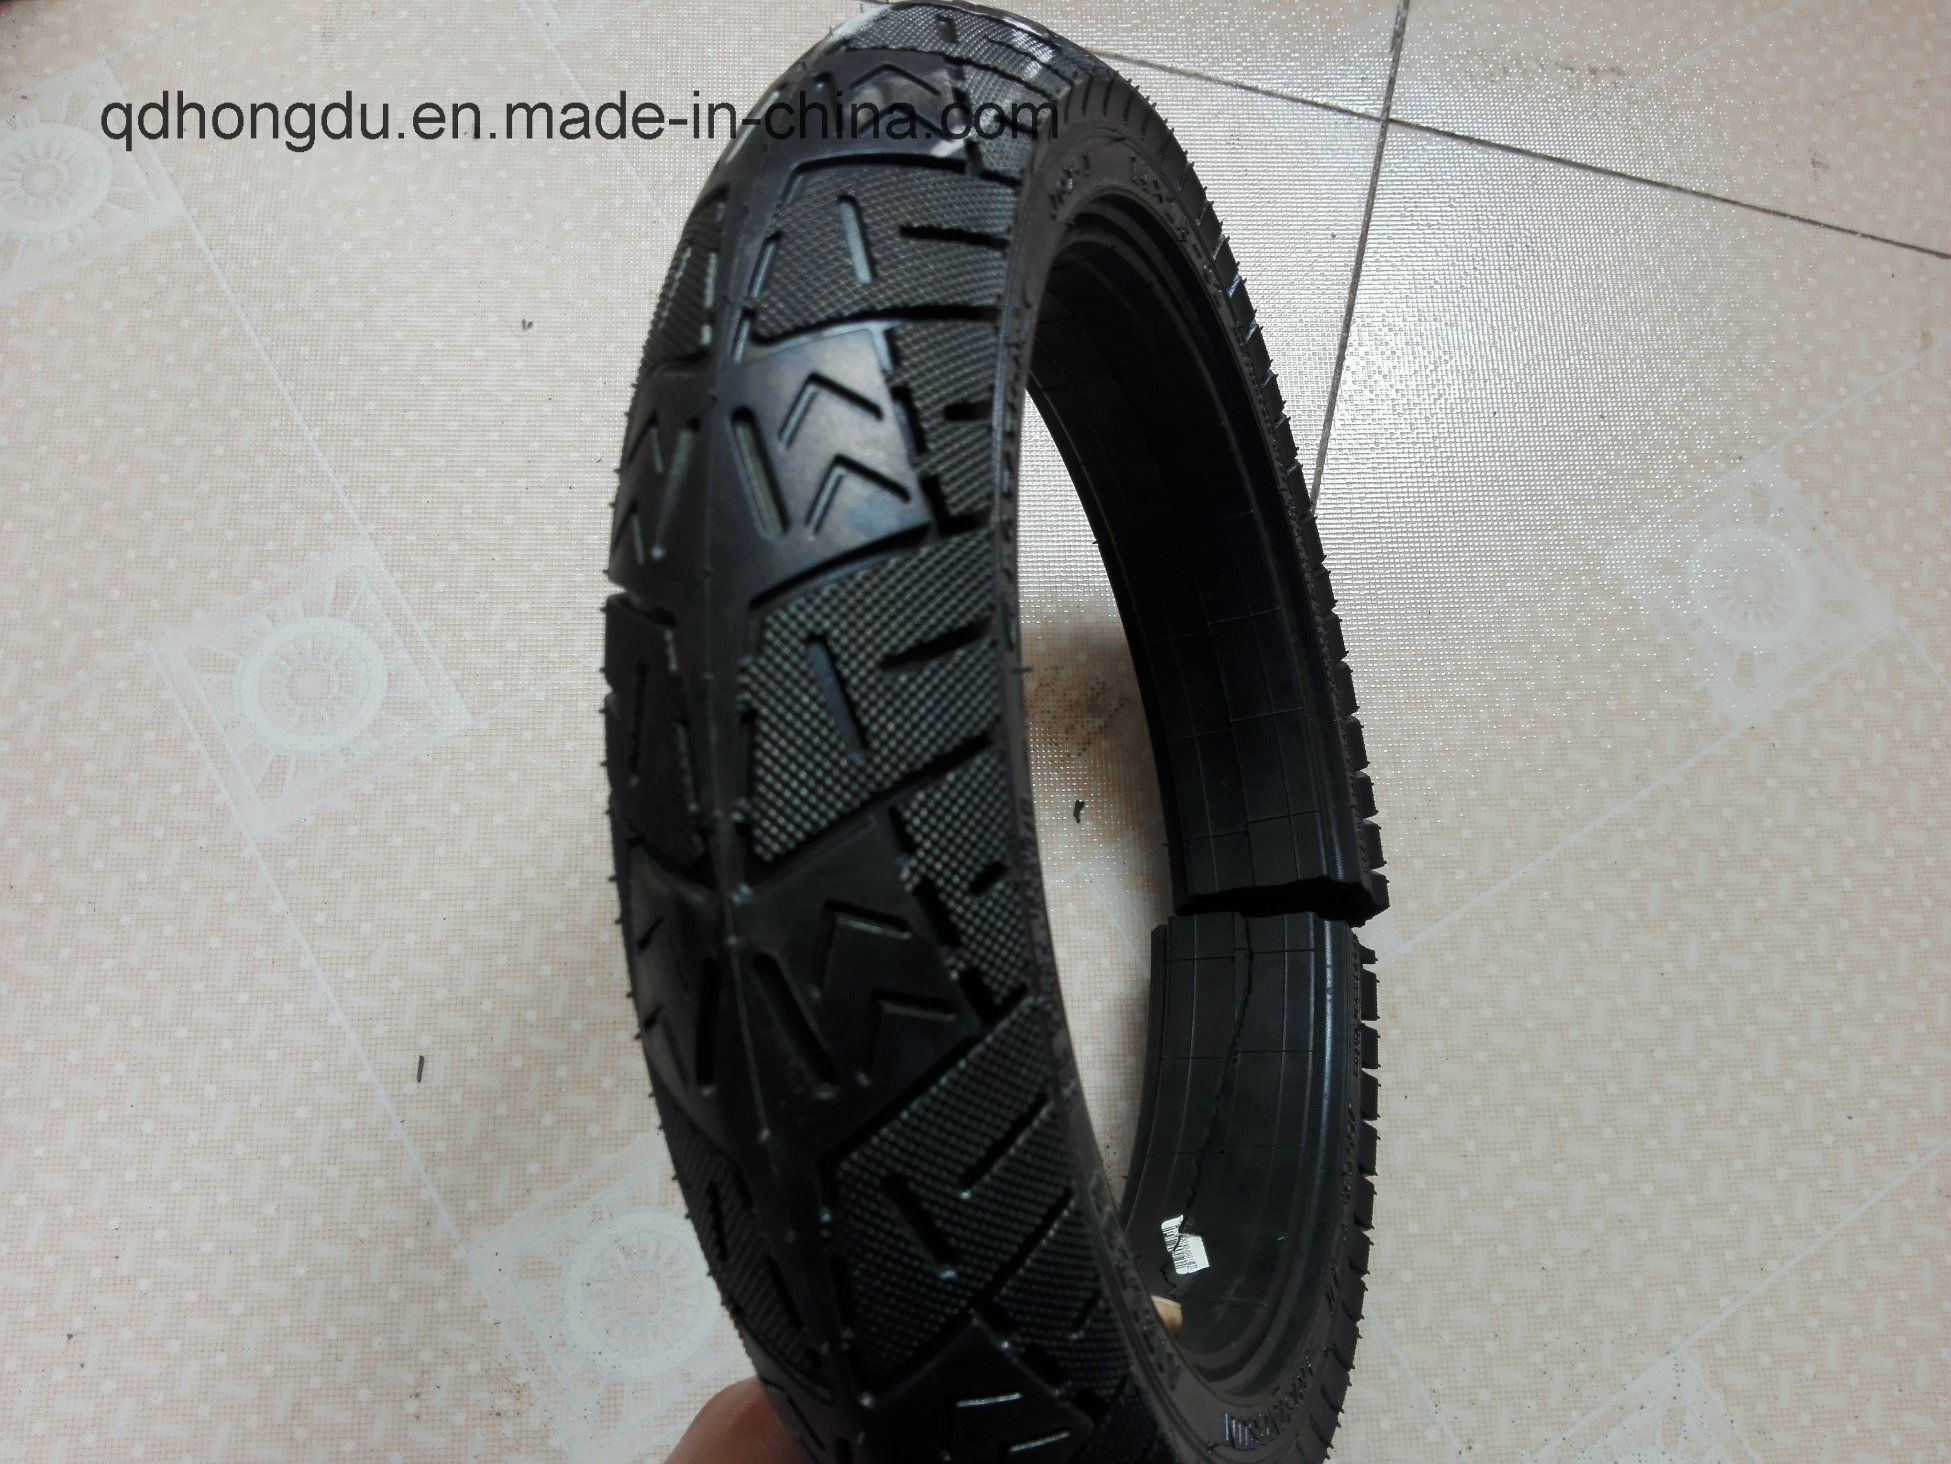 High Performance Tube Tyre Whith Rubber Material